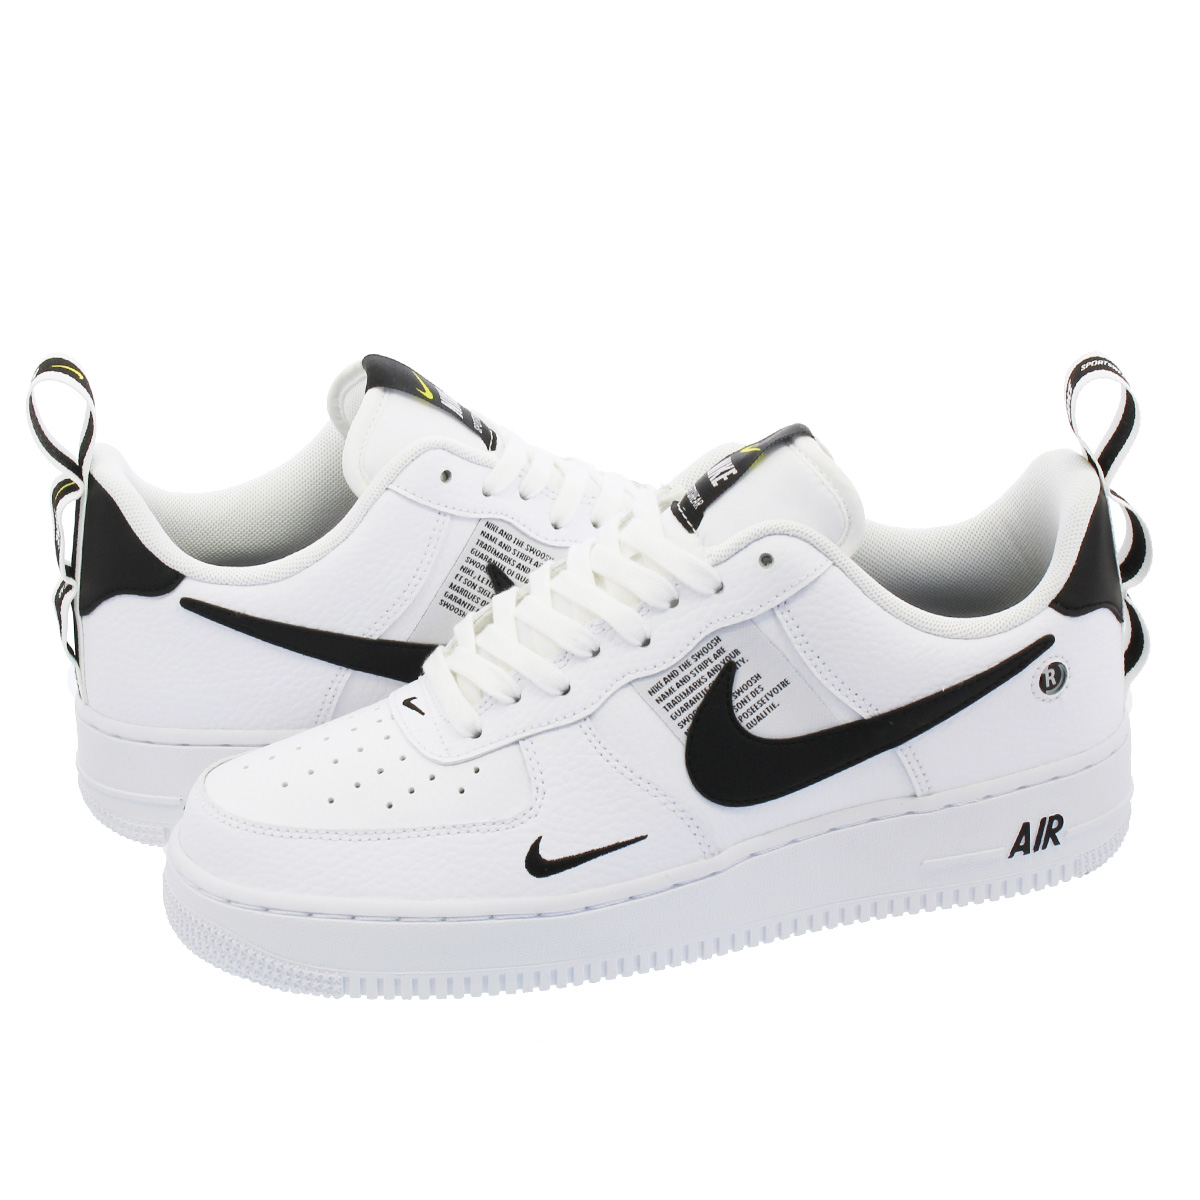 new product 2b140 acde5 NIKE AIR FORCE 1  07 LV8 UTILITY Nike air force 1  07 LV8 utility ...